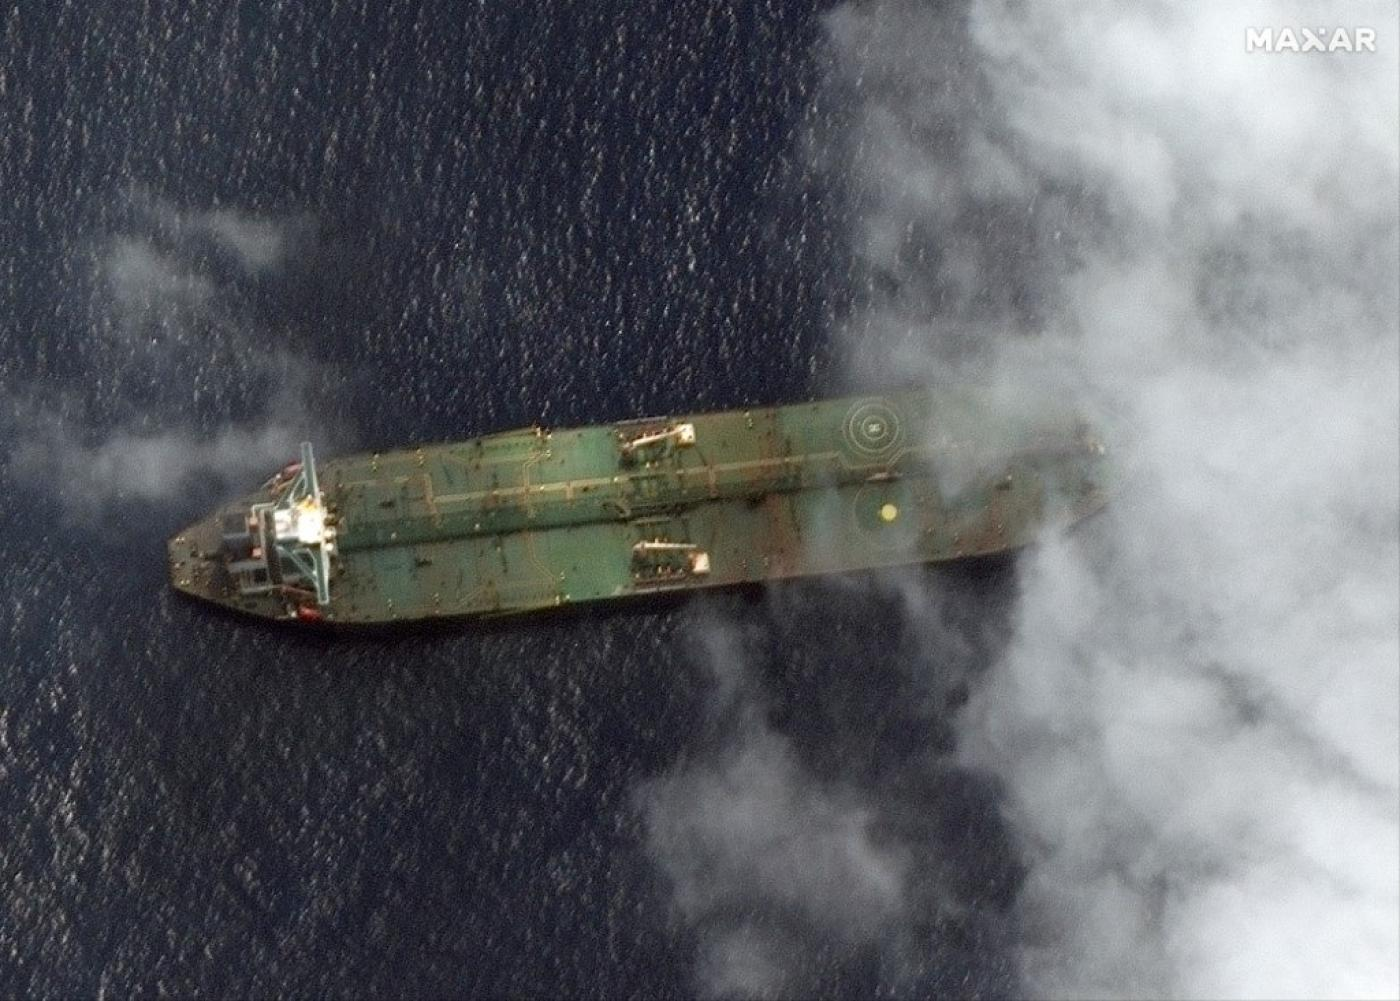 UK Says Assurances Over Oil Tanker Breached